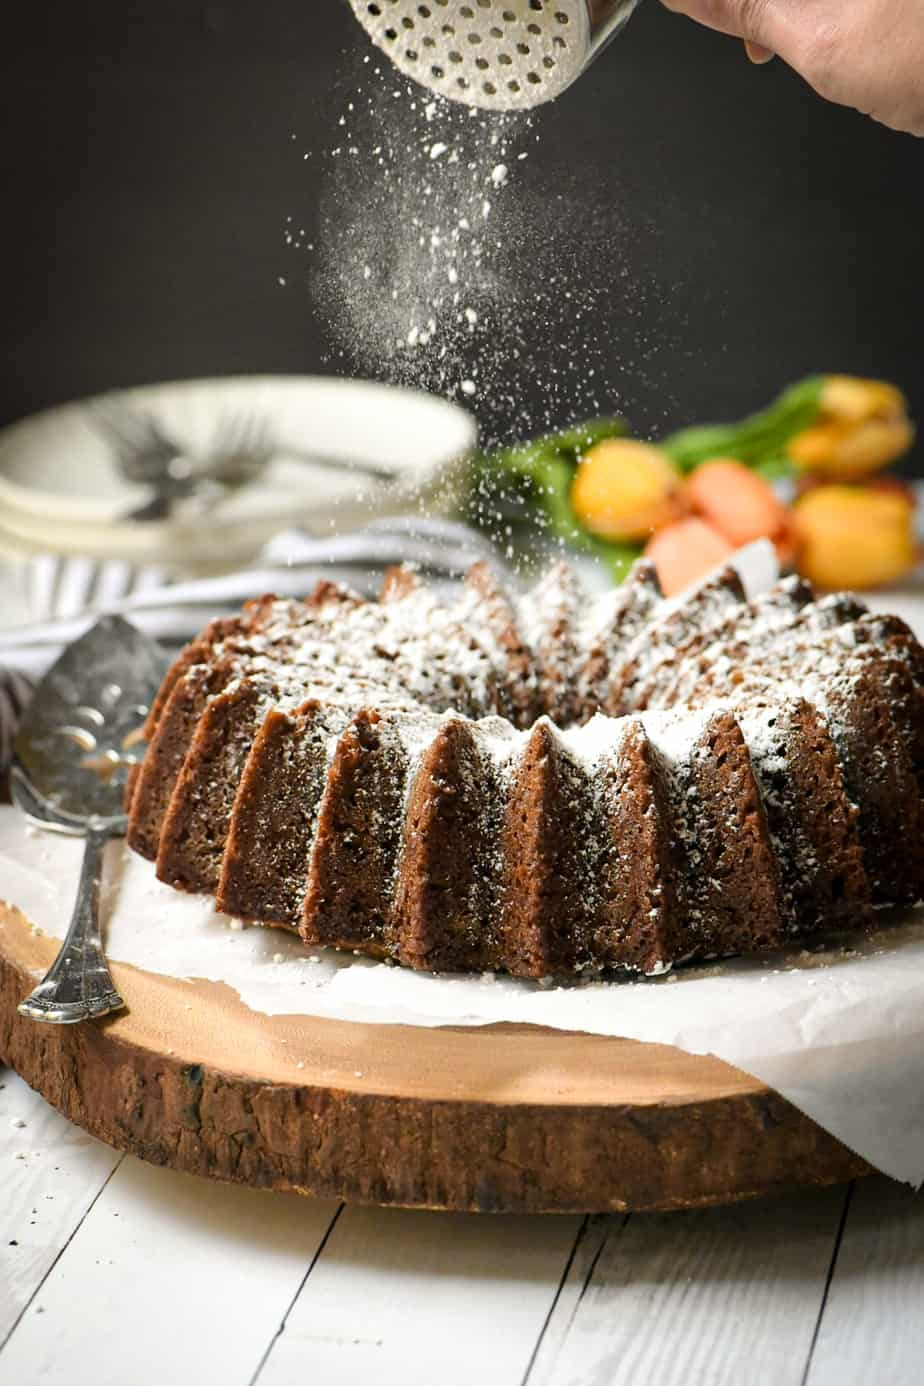 Easy Carrot Cake with Brandy